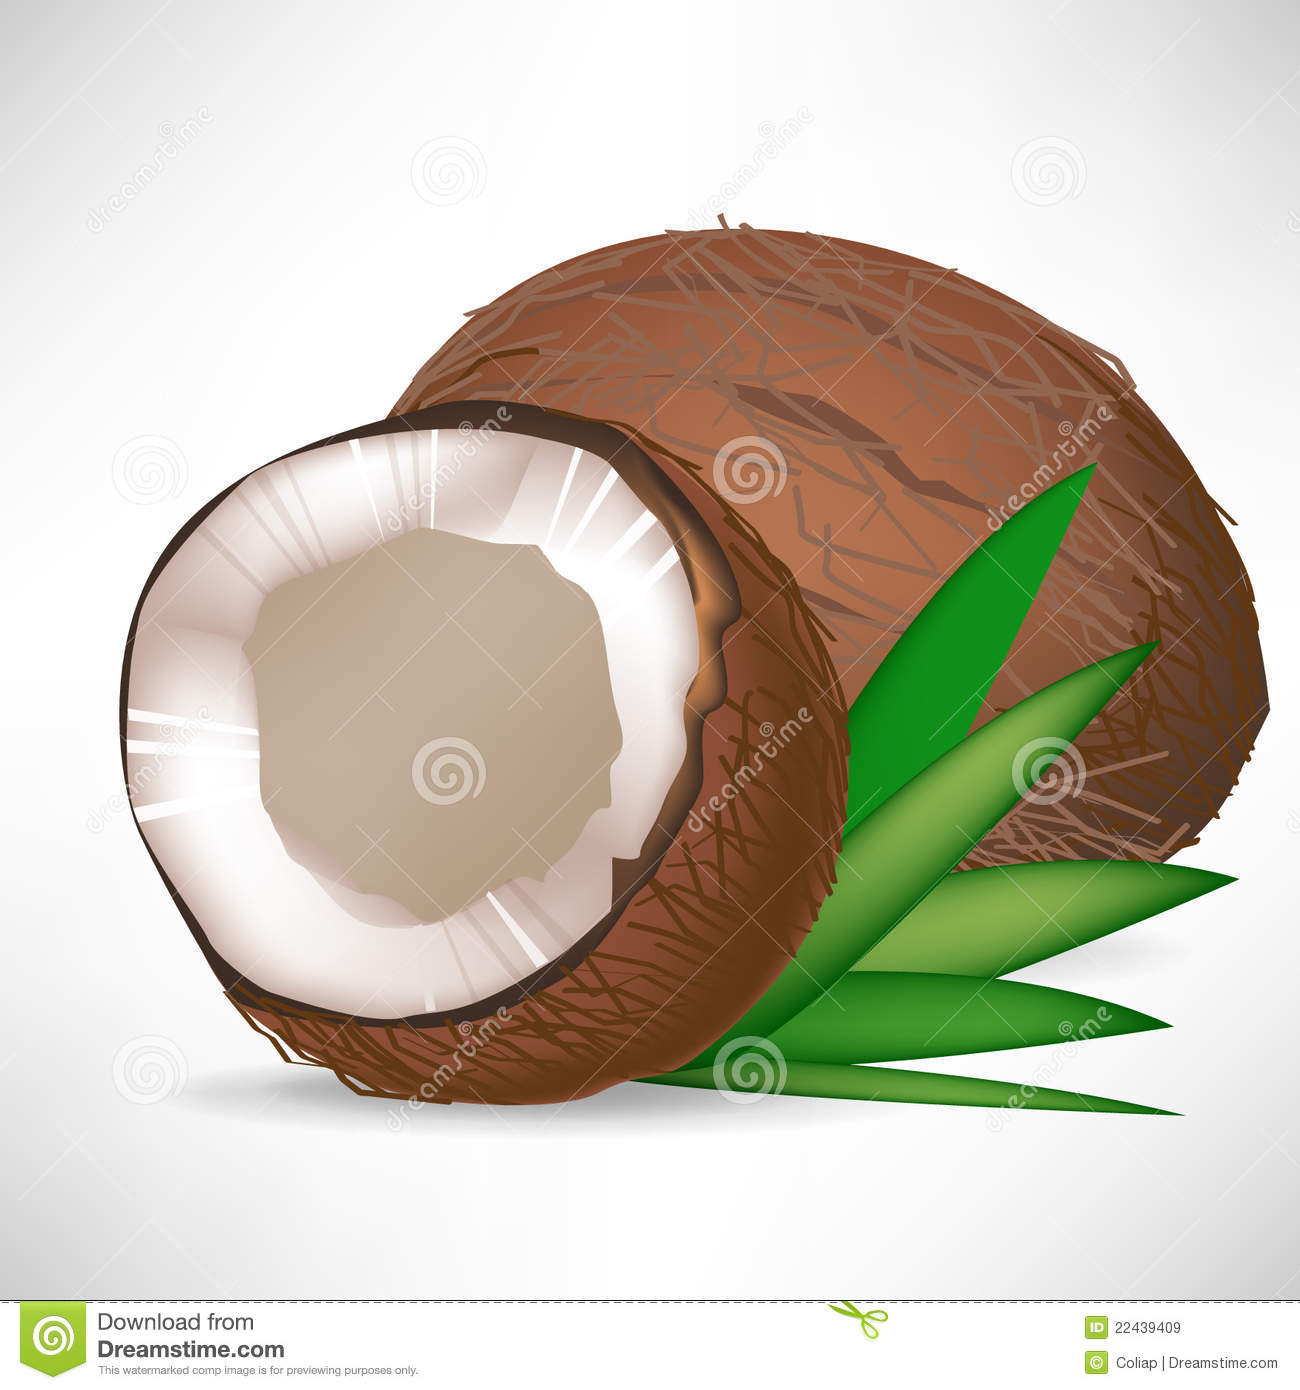 Cracked Coconut Whole Coconut Stock Illustrations 81 Cracked